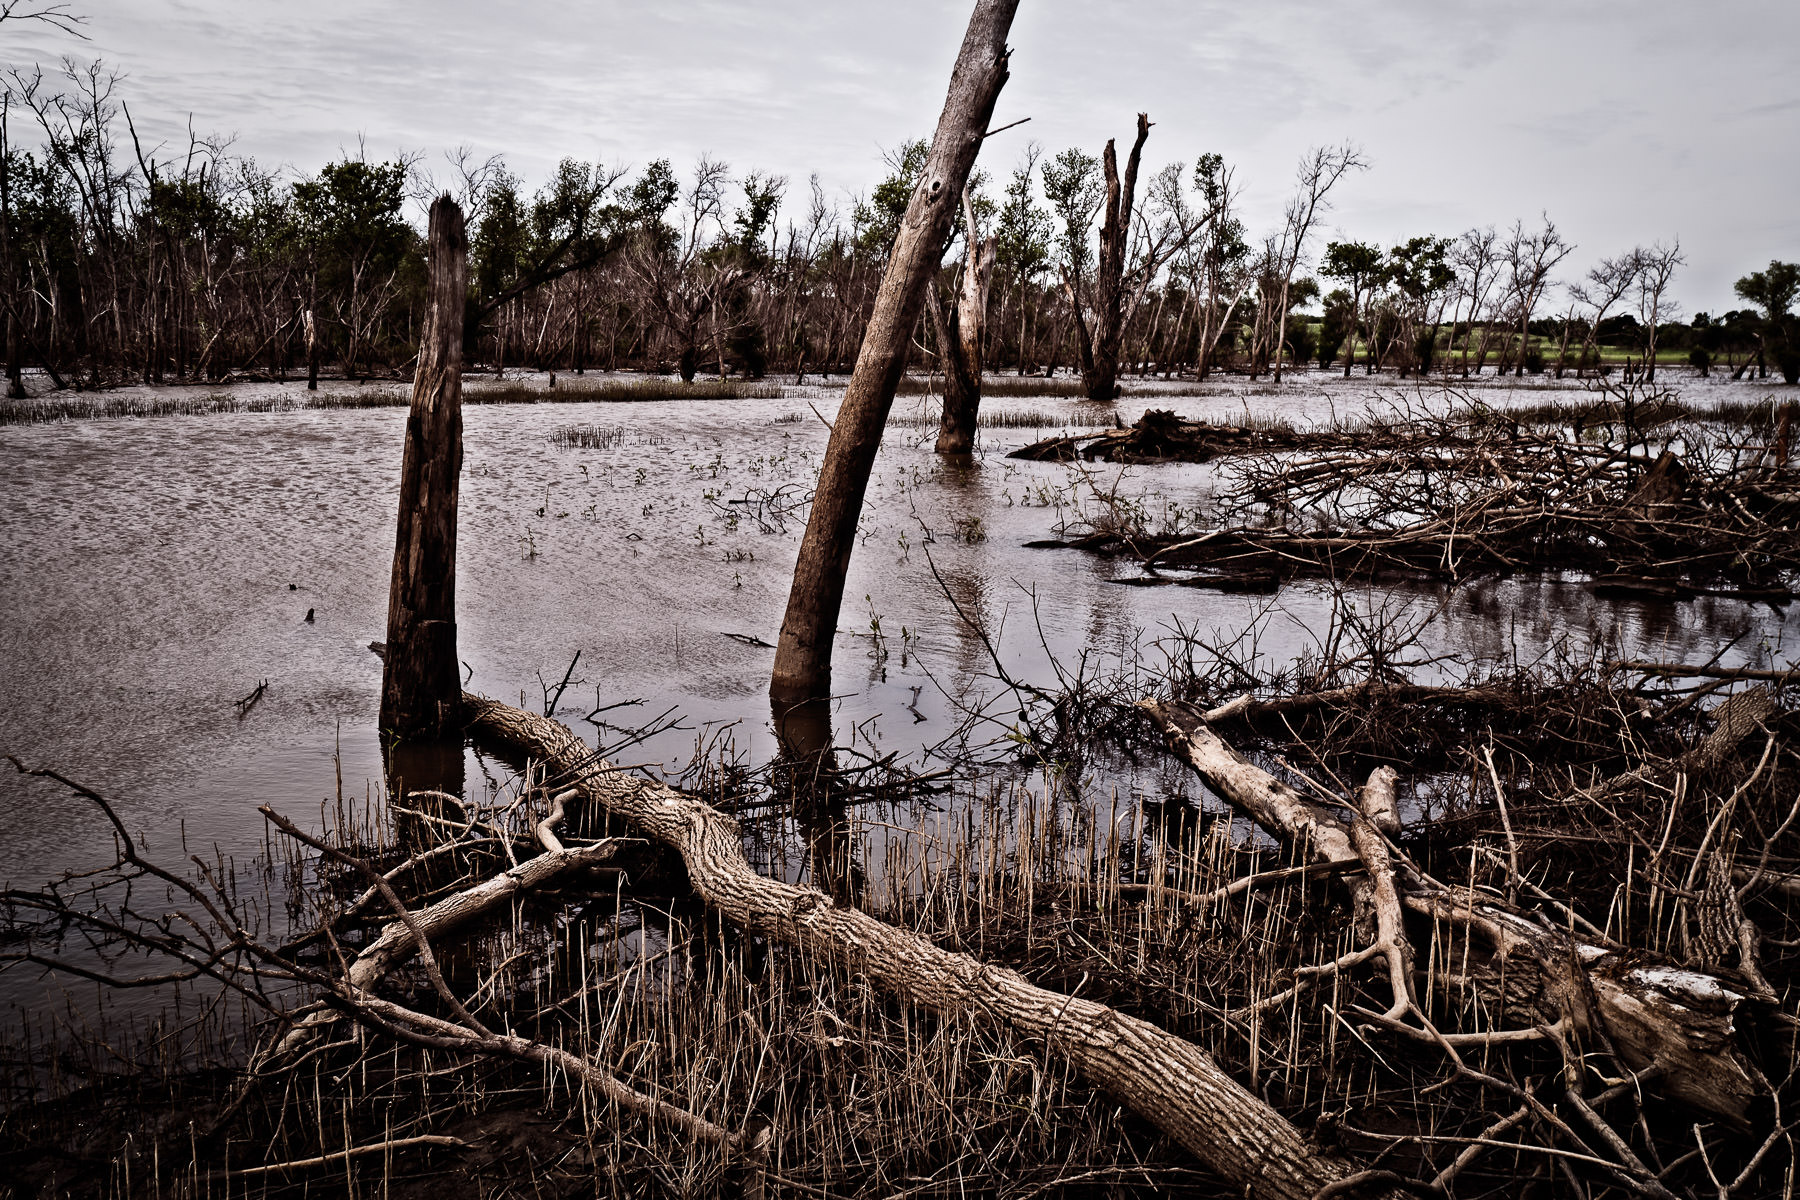 Dead trees decay in the swampy waters at the Hagerman National Wildlife Refuge, Texas.